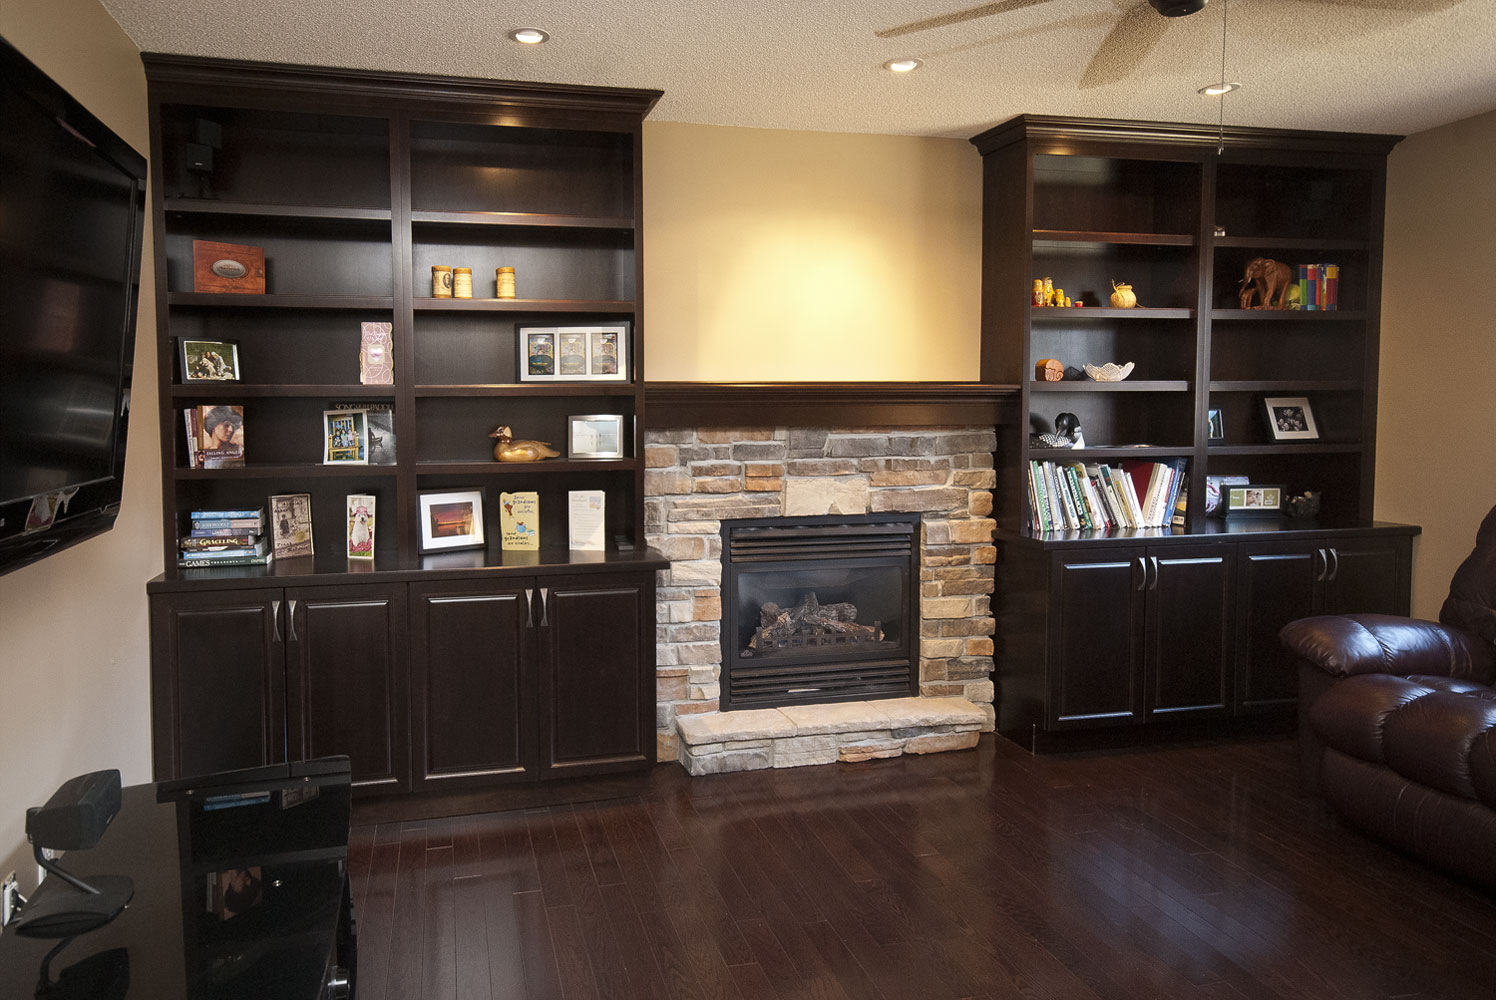 Basement living room renovation with gas fireplace and built-in shelving and storage - Total Living Concepts barrie ontario